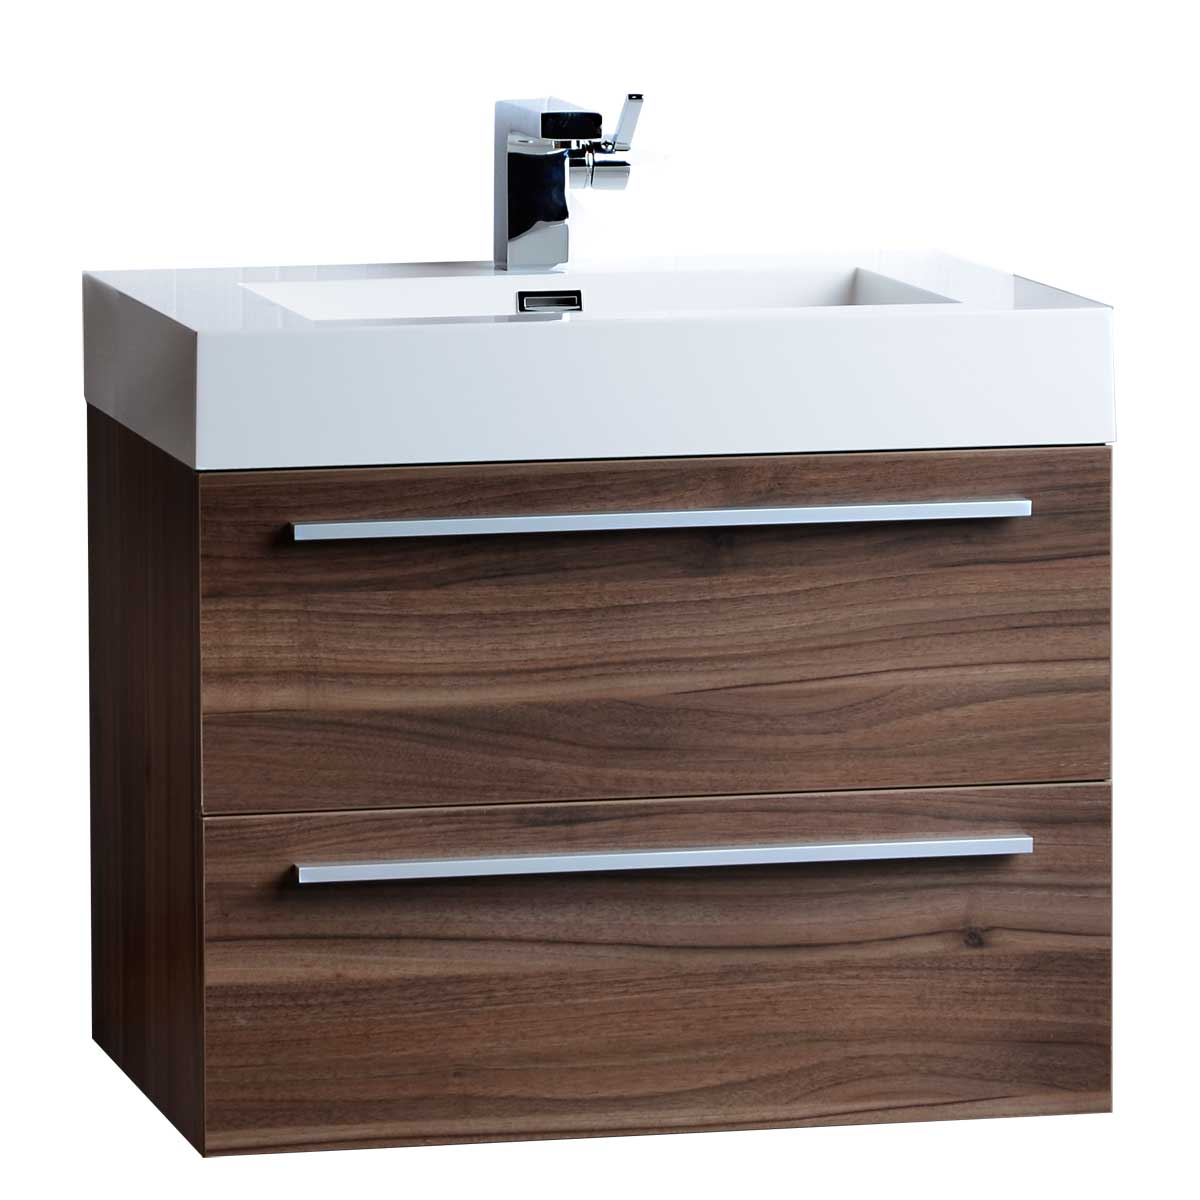 Single bathroom vanity set in walnut tn t690 wn on for Restroom vanity